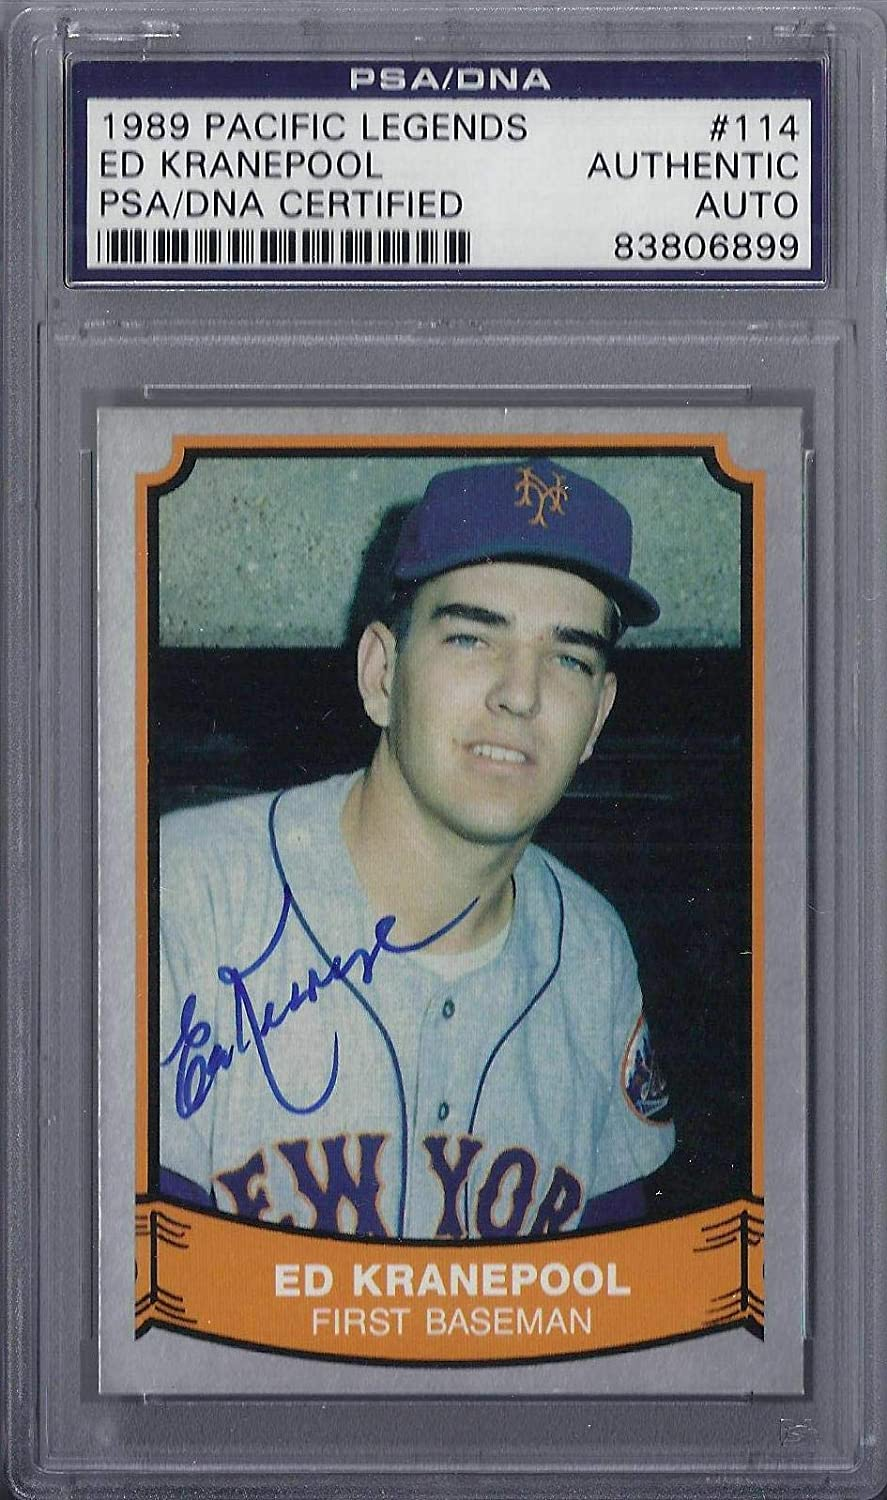 Ed Kranepool Signed 1989 Pacific Legends  PSA DNA Certified  Baseball Slabbed Autographed Cards